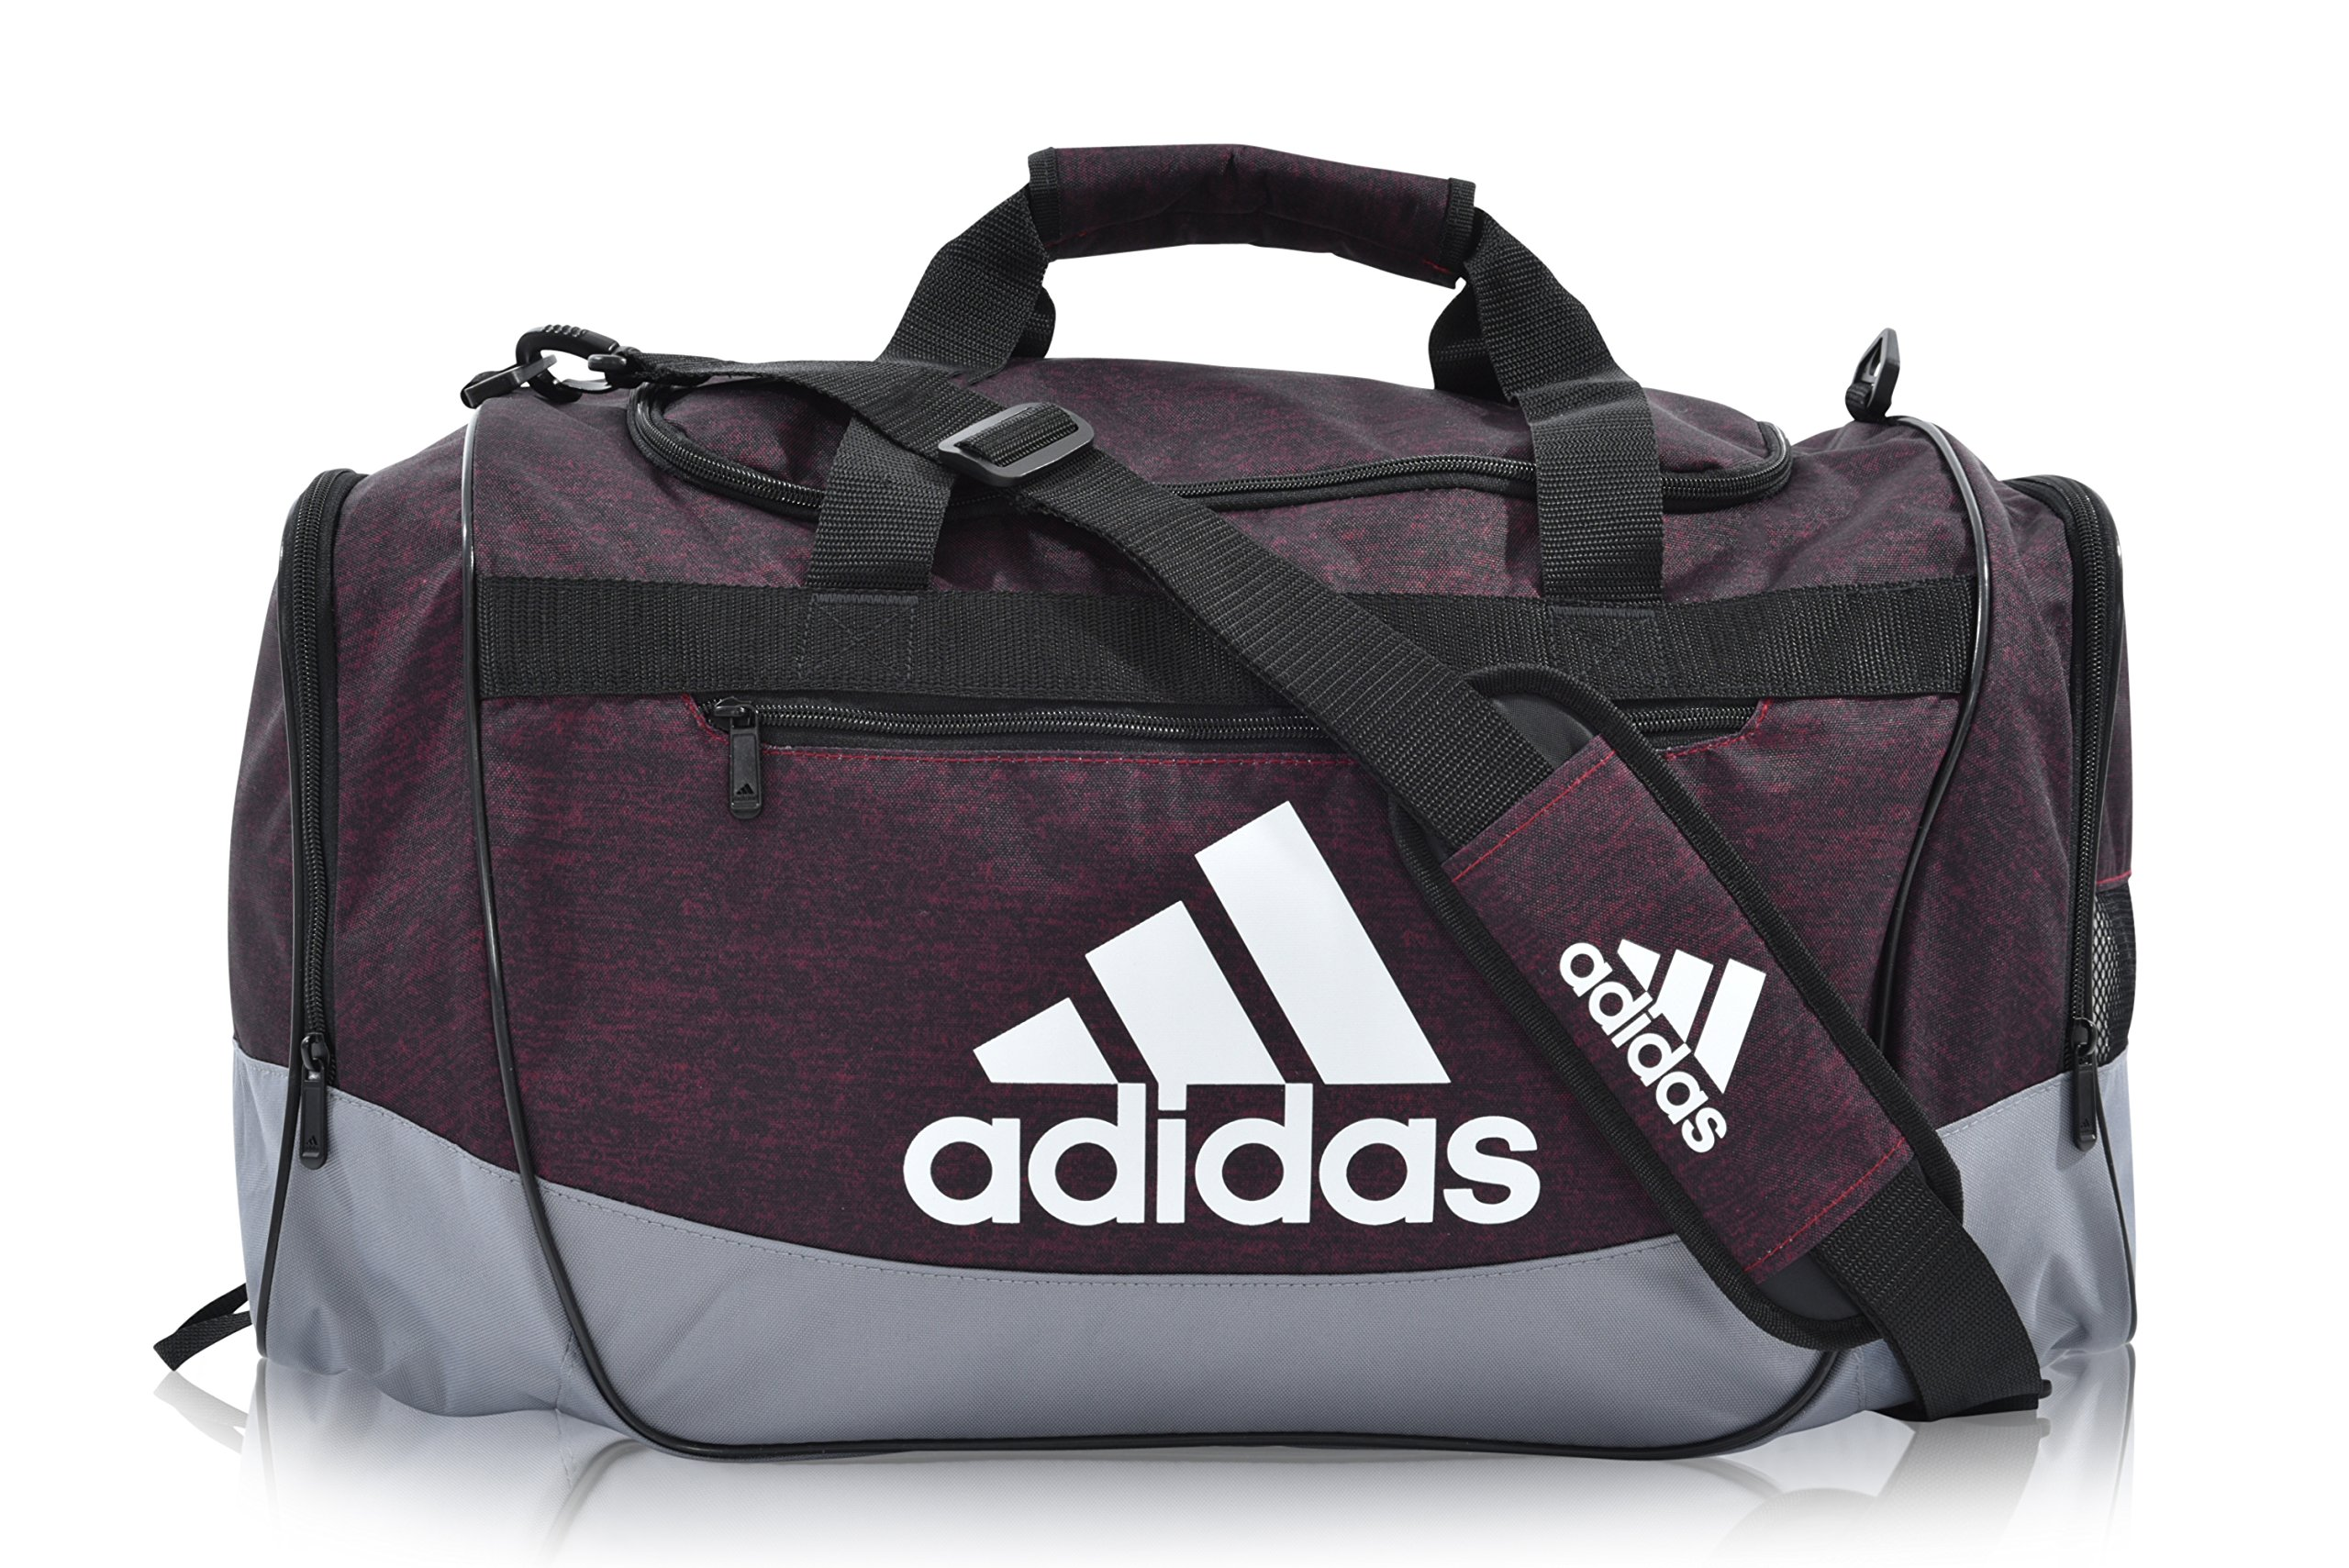 adidas Defender III Duffel Bag (Medium, Burgundy)